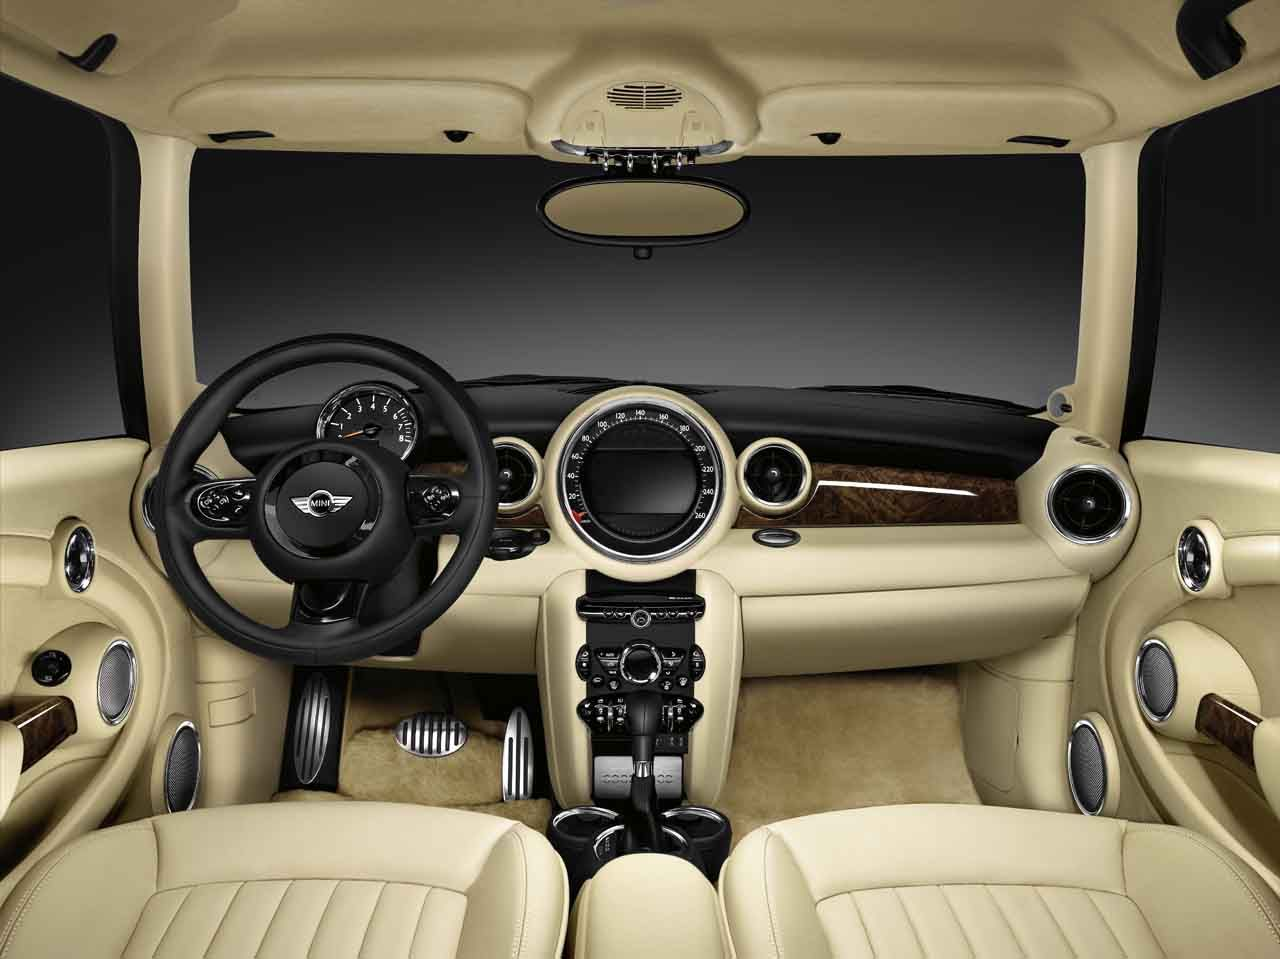 MINI inspired by Goodwood: the most luxurious MINI ever made.